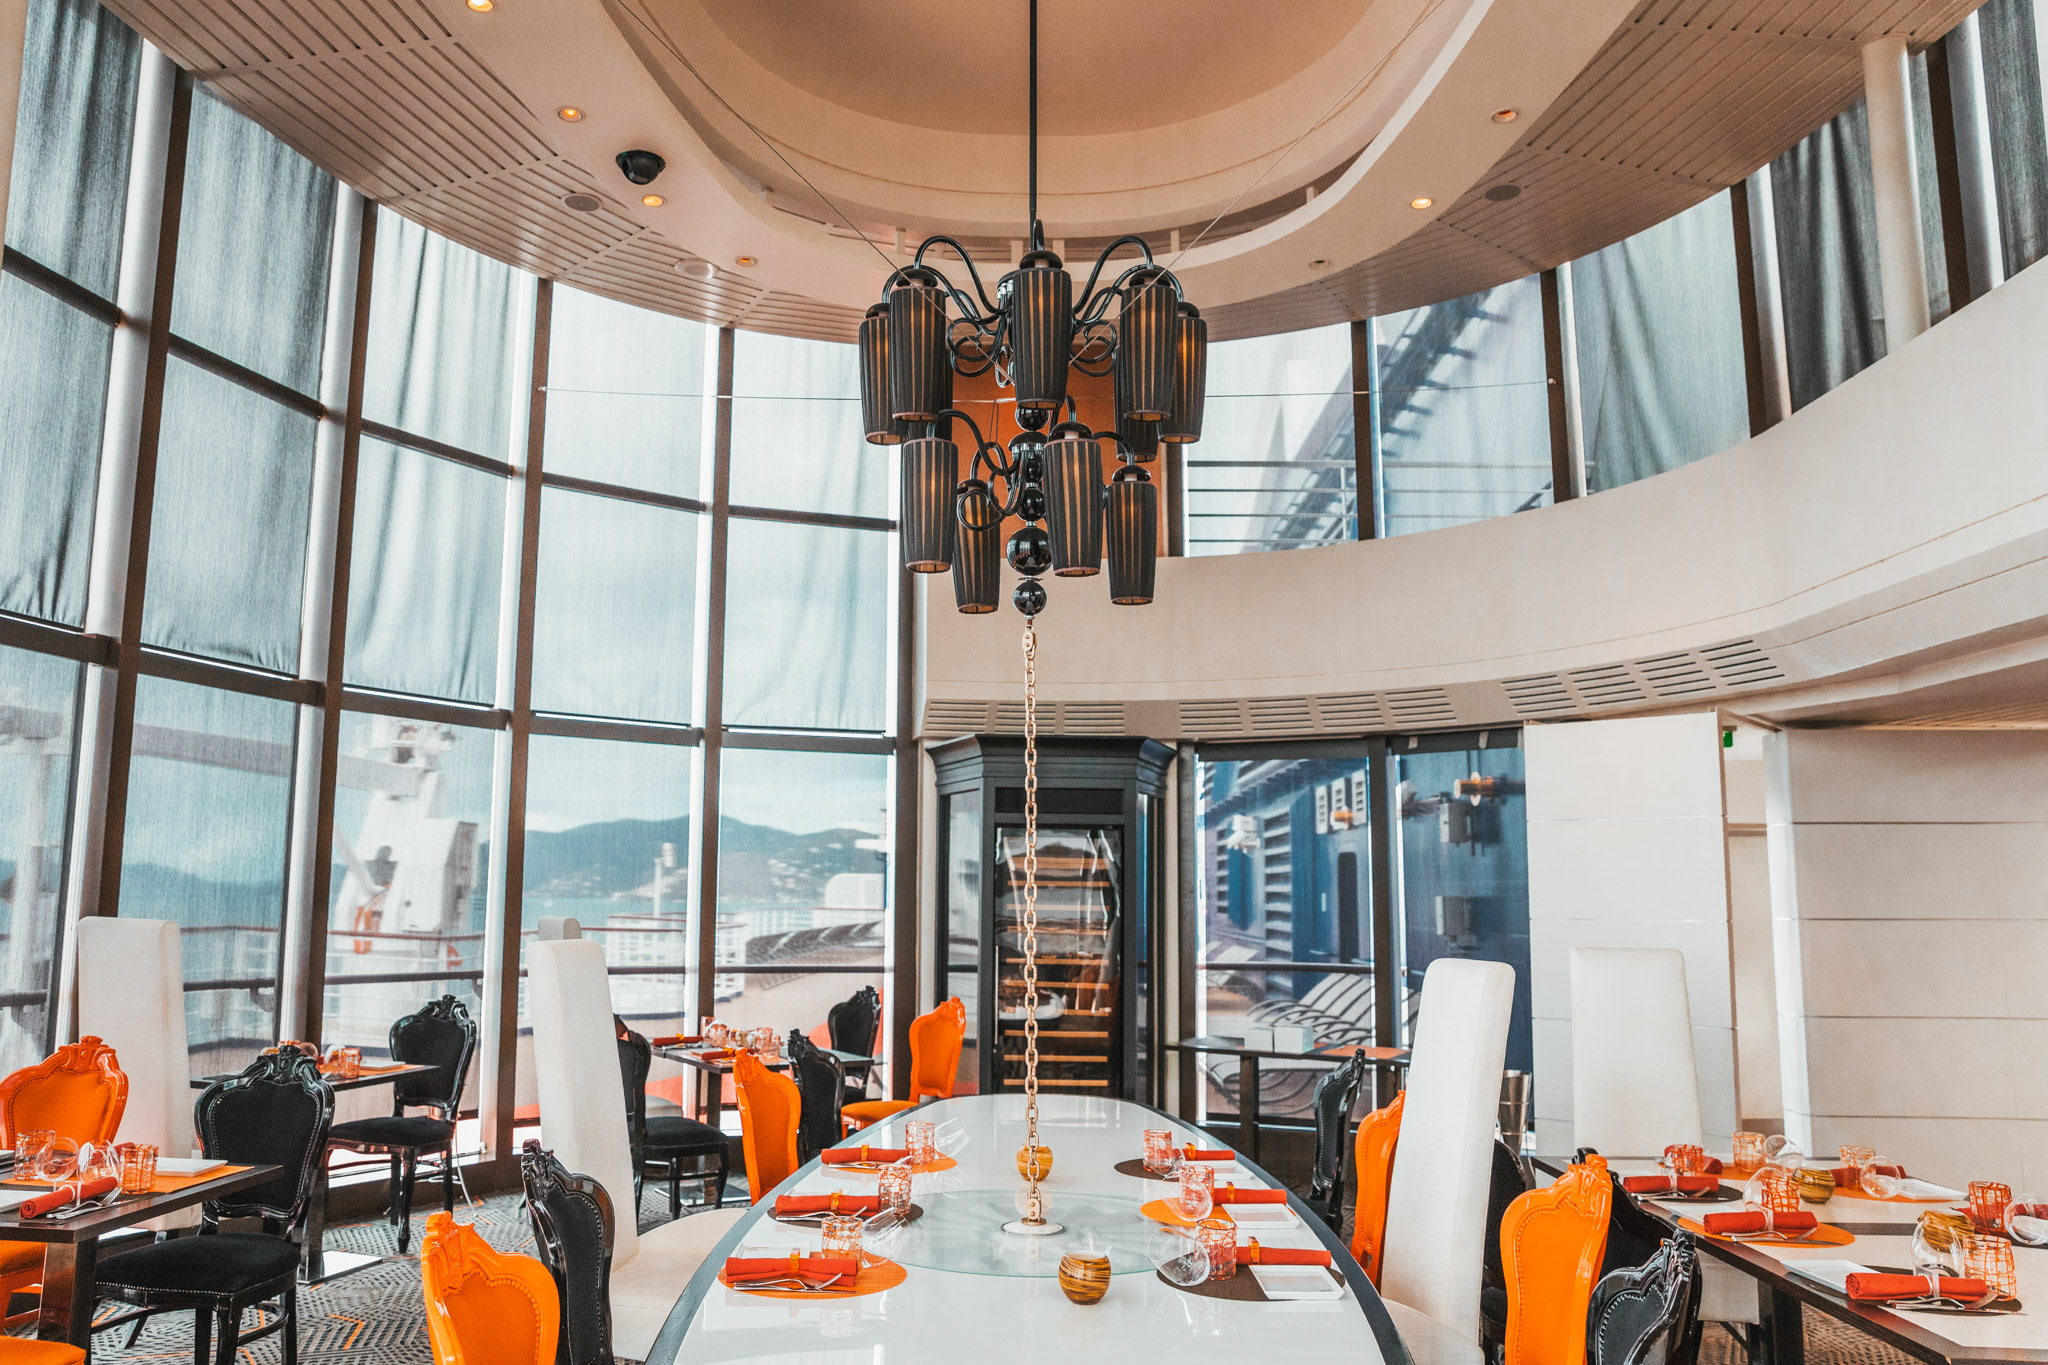 Qsine, one of the specialty restaurants onboard the Celebrity Summit cruise ship